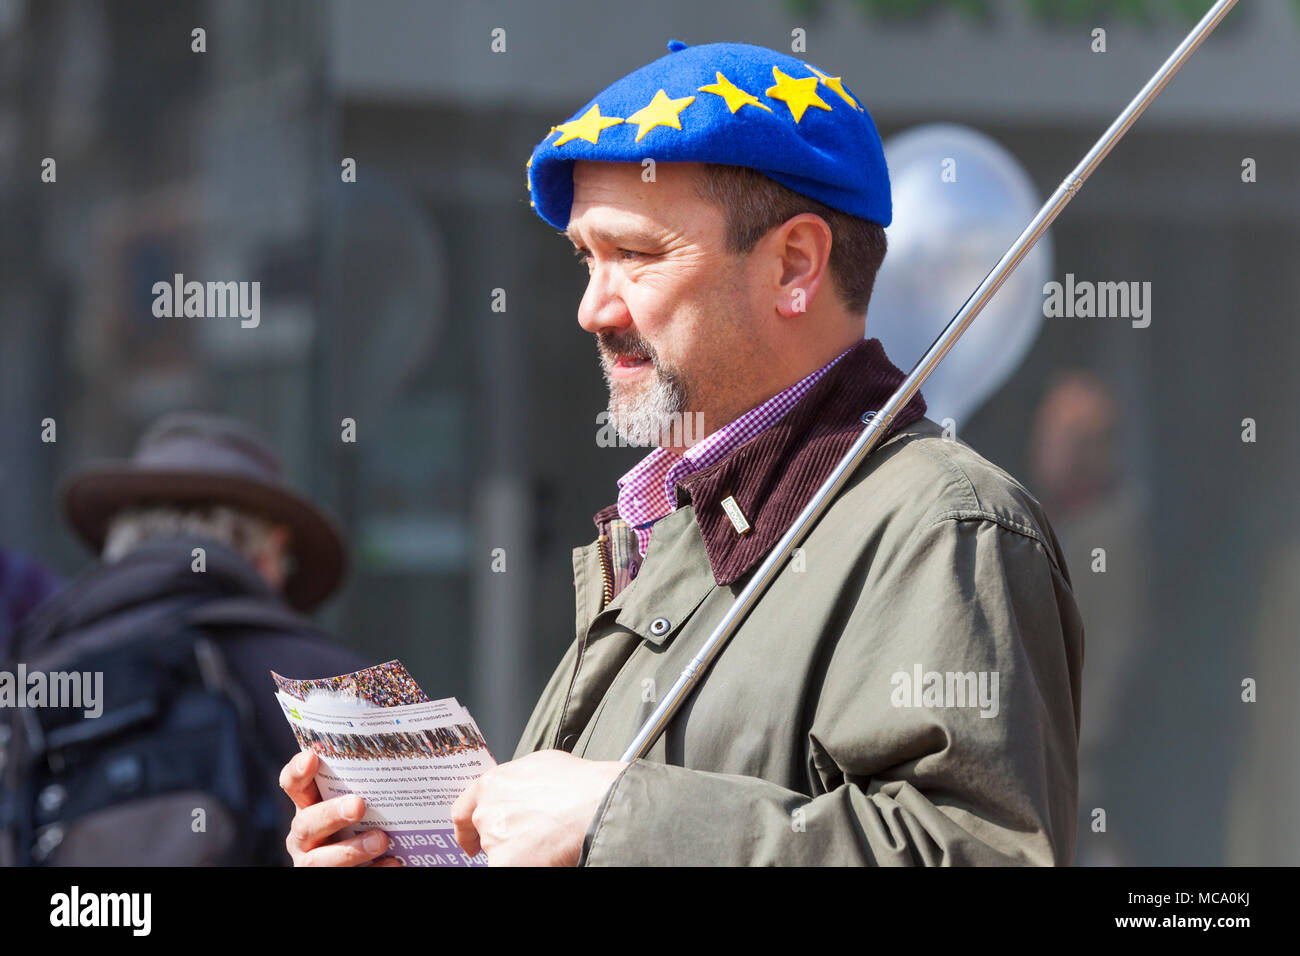 People's vote. A Protest is being held in the town centre of Ashford in Kent this morning demanding a vote on the final Brexit deal. The people protesting are demanding the right to a say on how the deal should be handled. © Paul Lawrenson 2018, Photo Credit: Paul Lawrenson / Alamy Live News - Stock Image